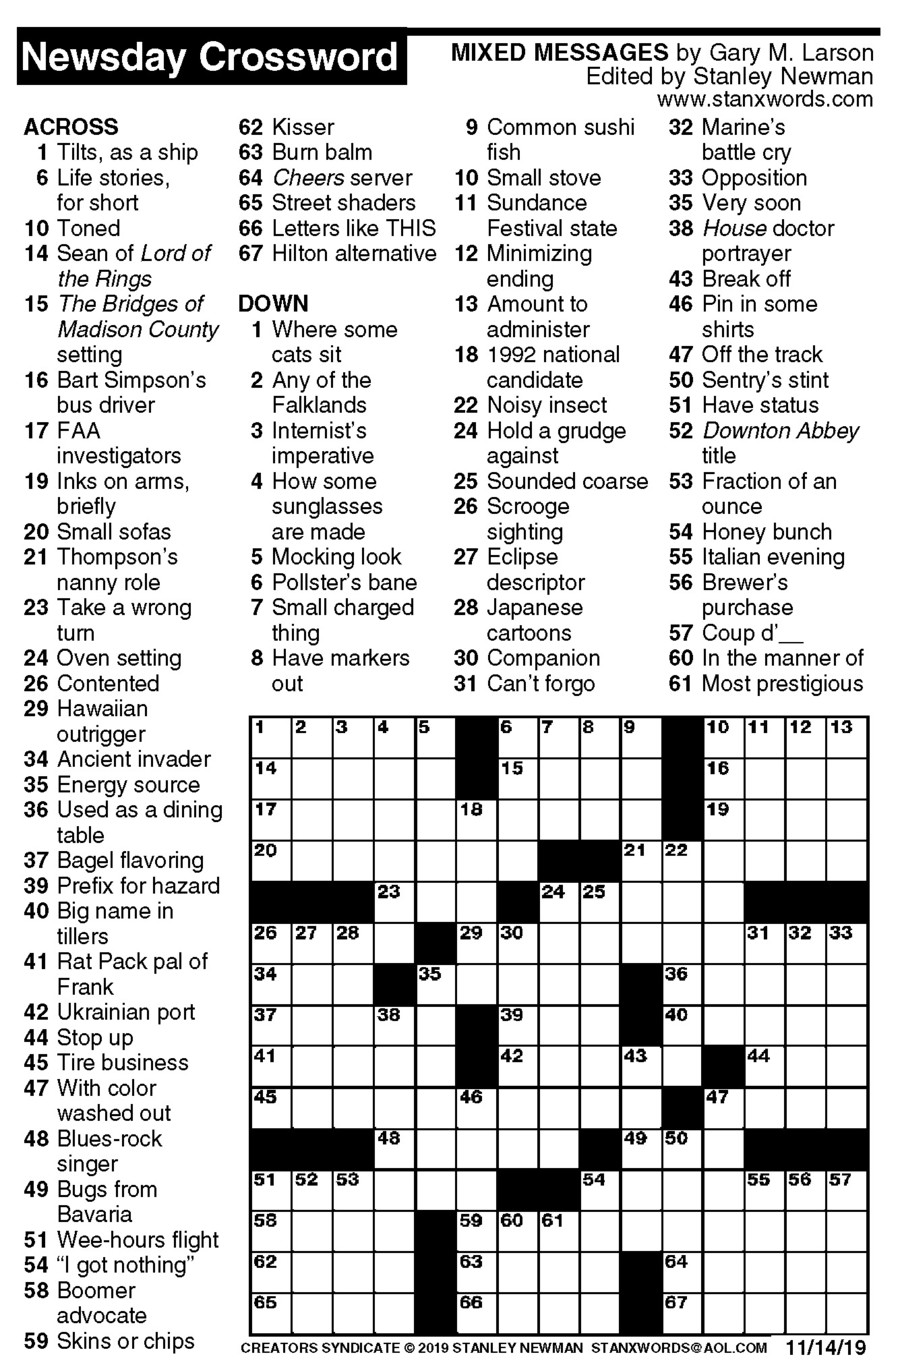 Newsday Crossword Puzzle for Nov 14, 2019